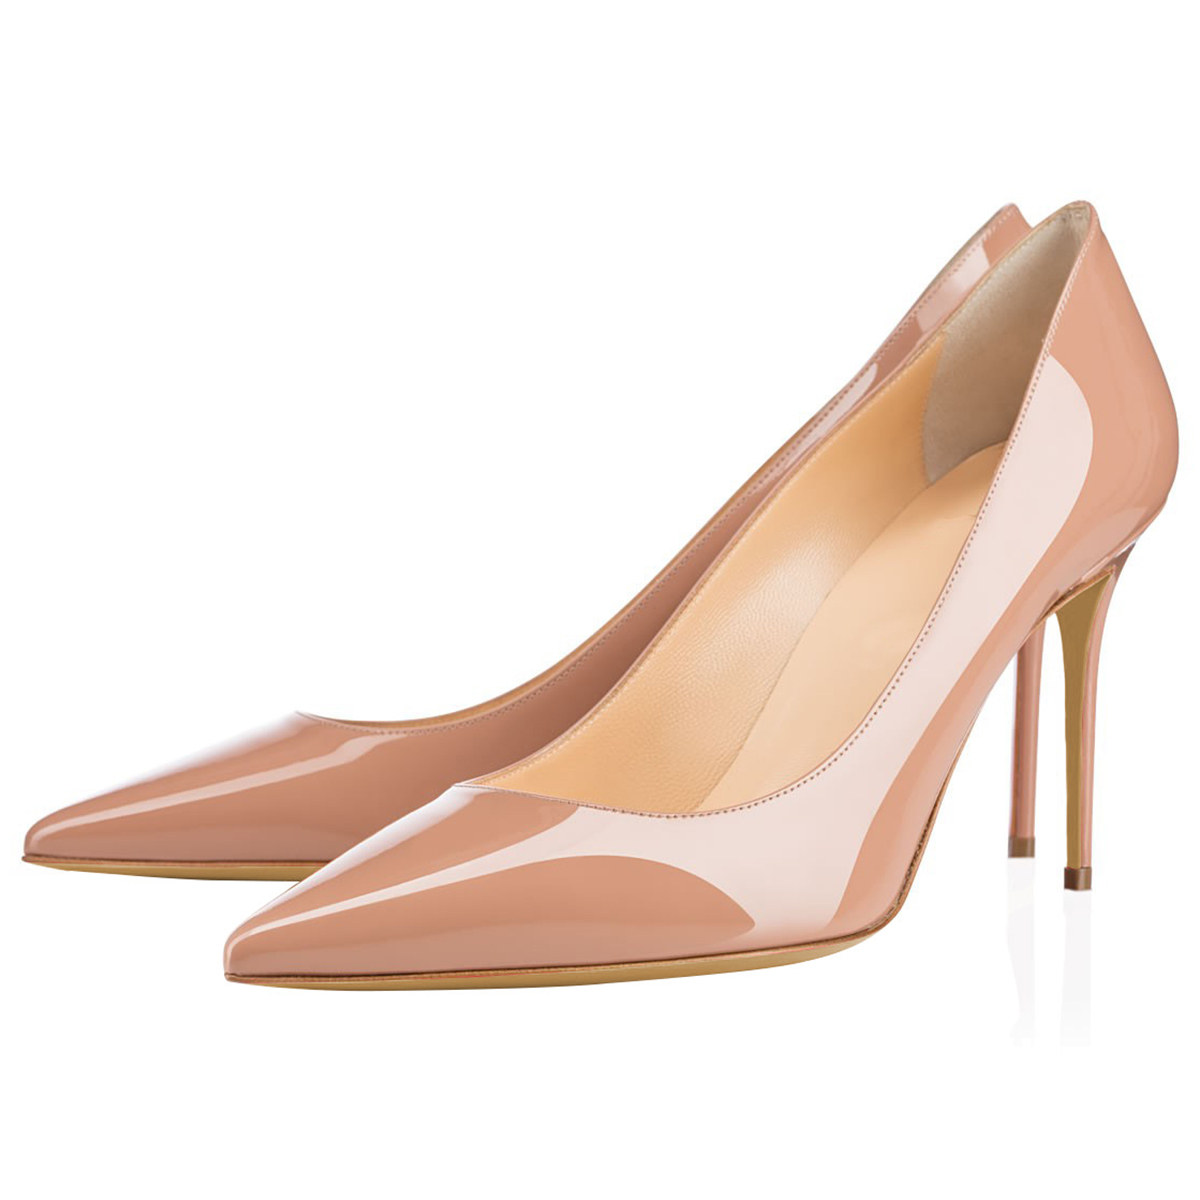 Aiyoway 2019 Women Shoes Ladies Pointed Toe High Heels Pumps Autumn Spring Party Work amp Career Shoes Slip On Patent Leather in Women 39 s Pumps from Shoes